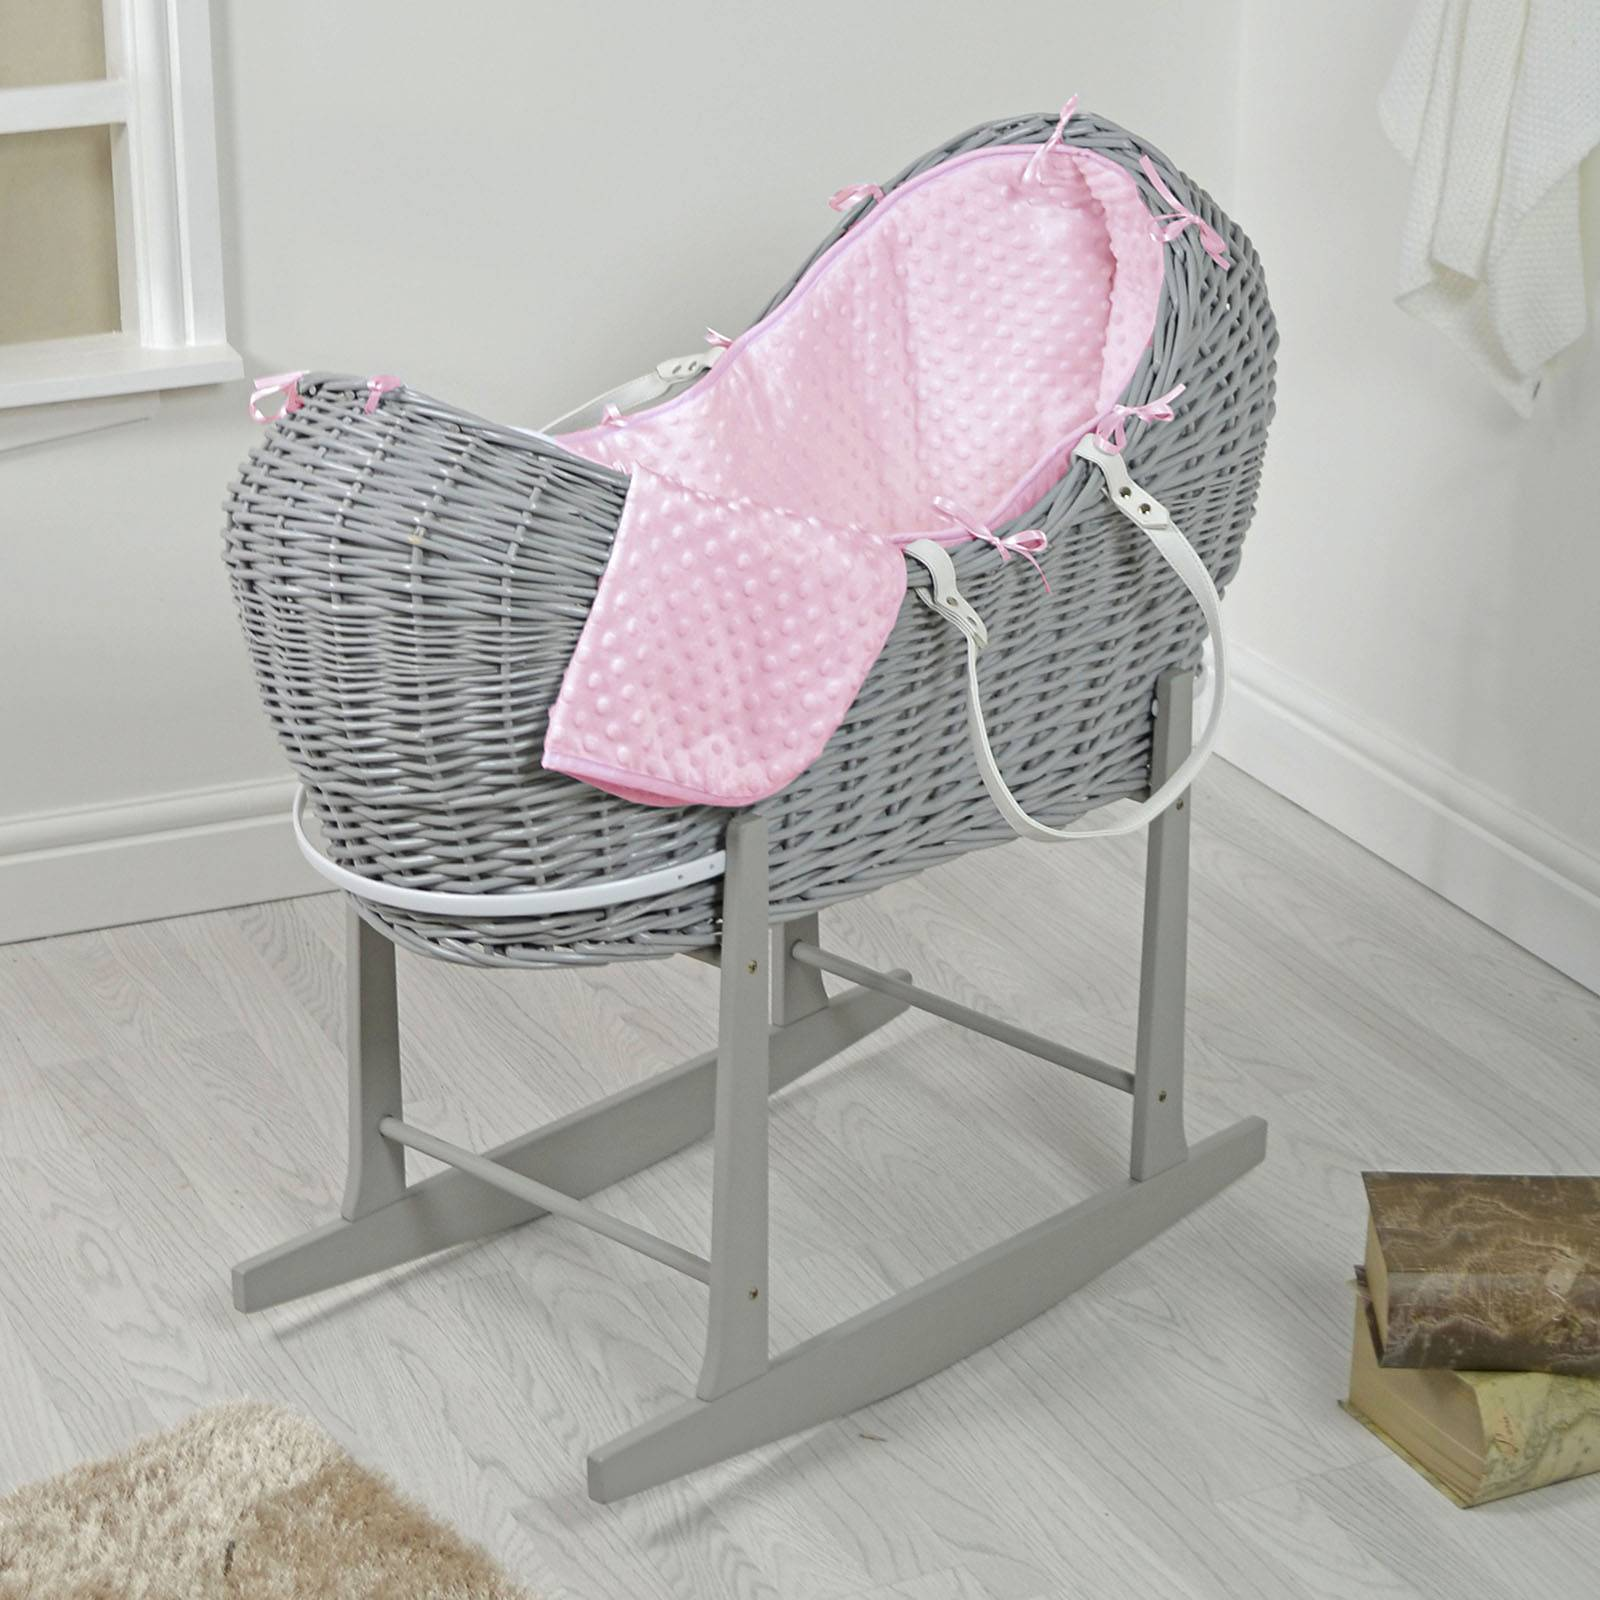 4 baby 4baby Grey Wicker Snooze Pod & Rocking Stand - Pink Dimple